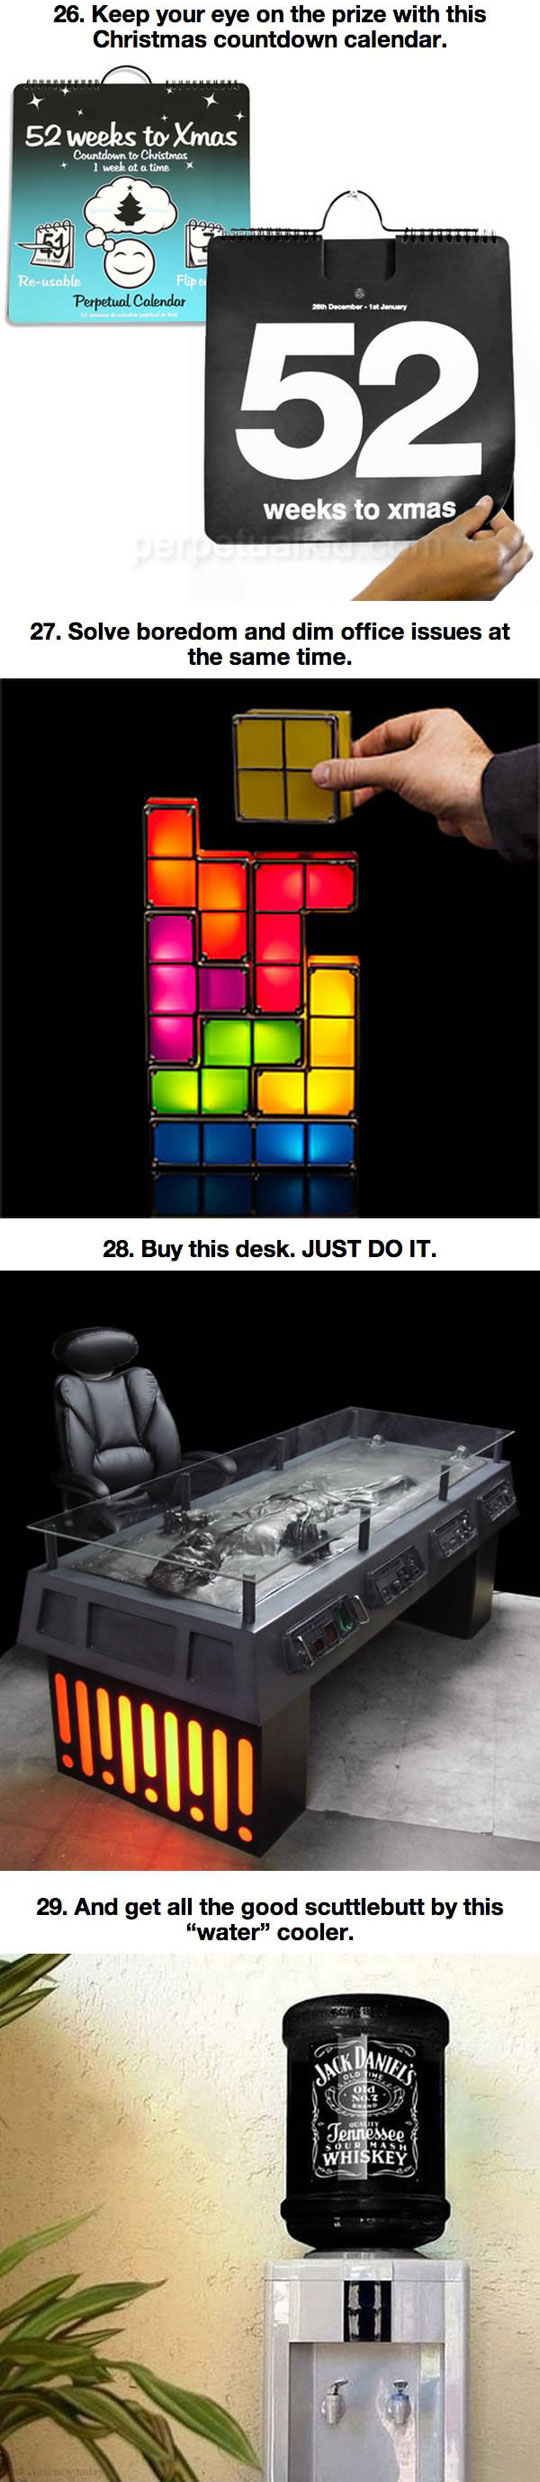 cool-office-gadgets-geek-calendar-desk